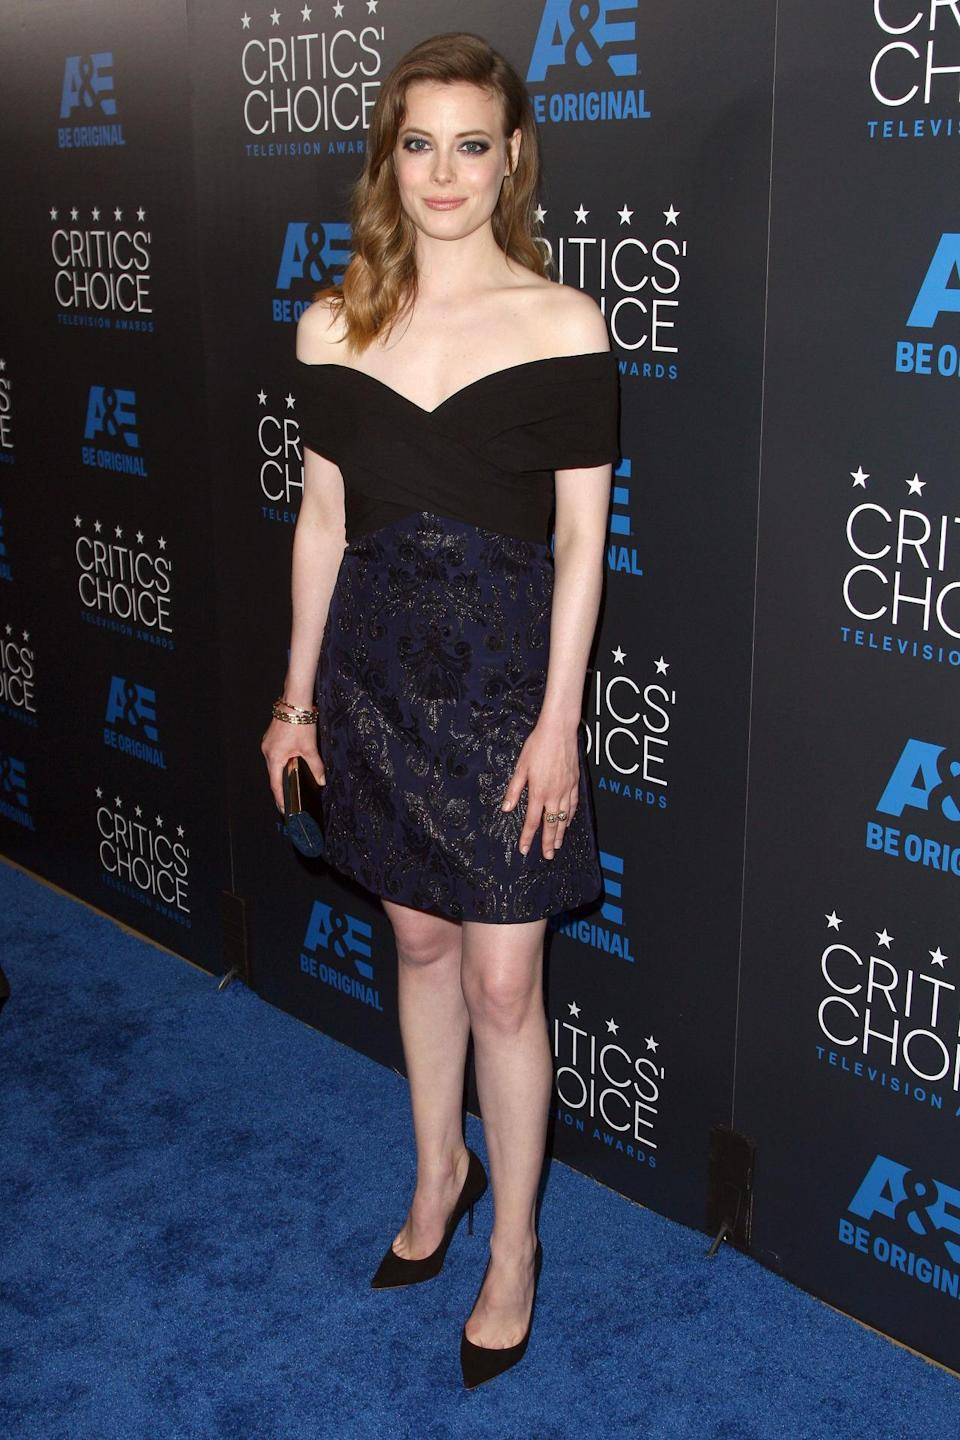 Gillian Jacobs was oh-so-trendy in an off-the-shoulder dress from J. Mendel.